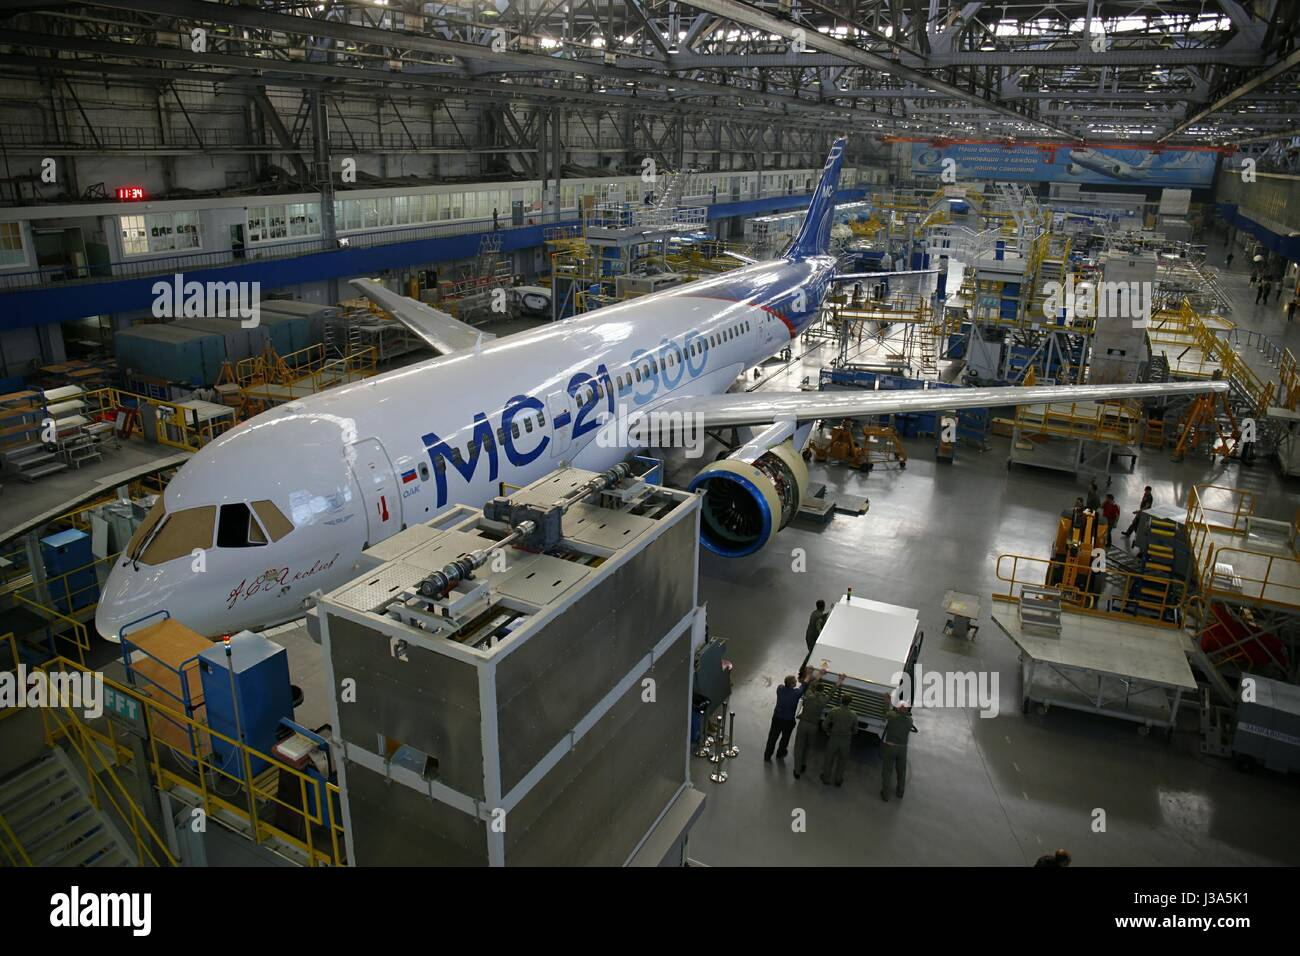 Russia. The first Irkut MC-21 aircraft left the assembly shop of the Irkut Corporation plant. The Irkut MC-21 is - Stock Image